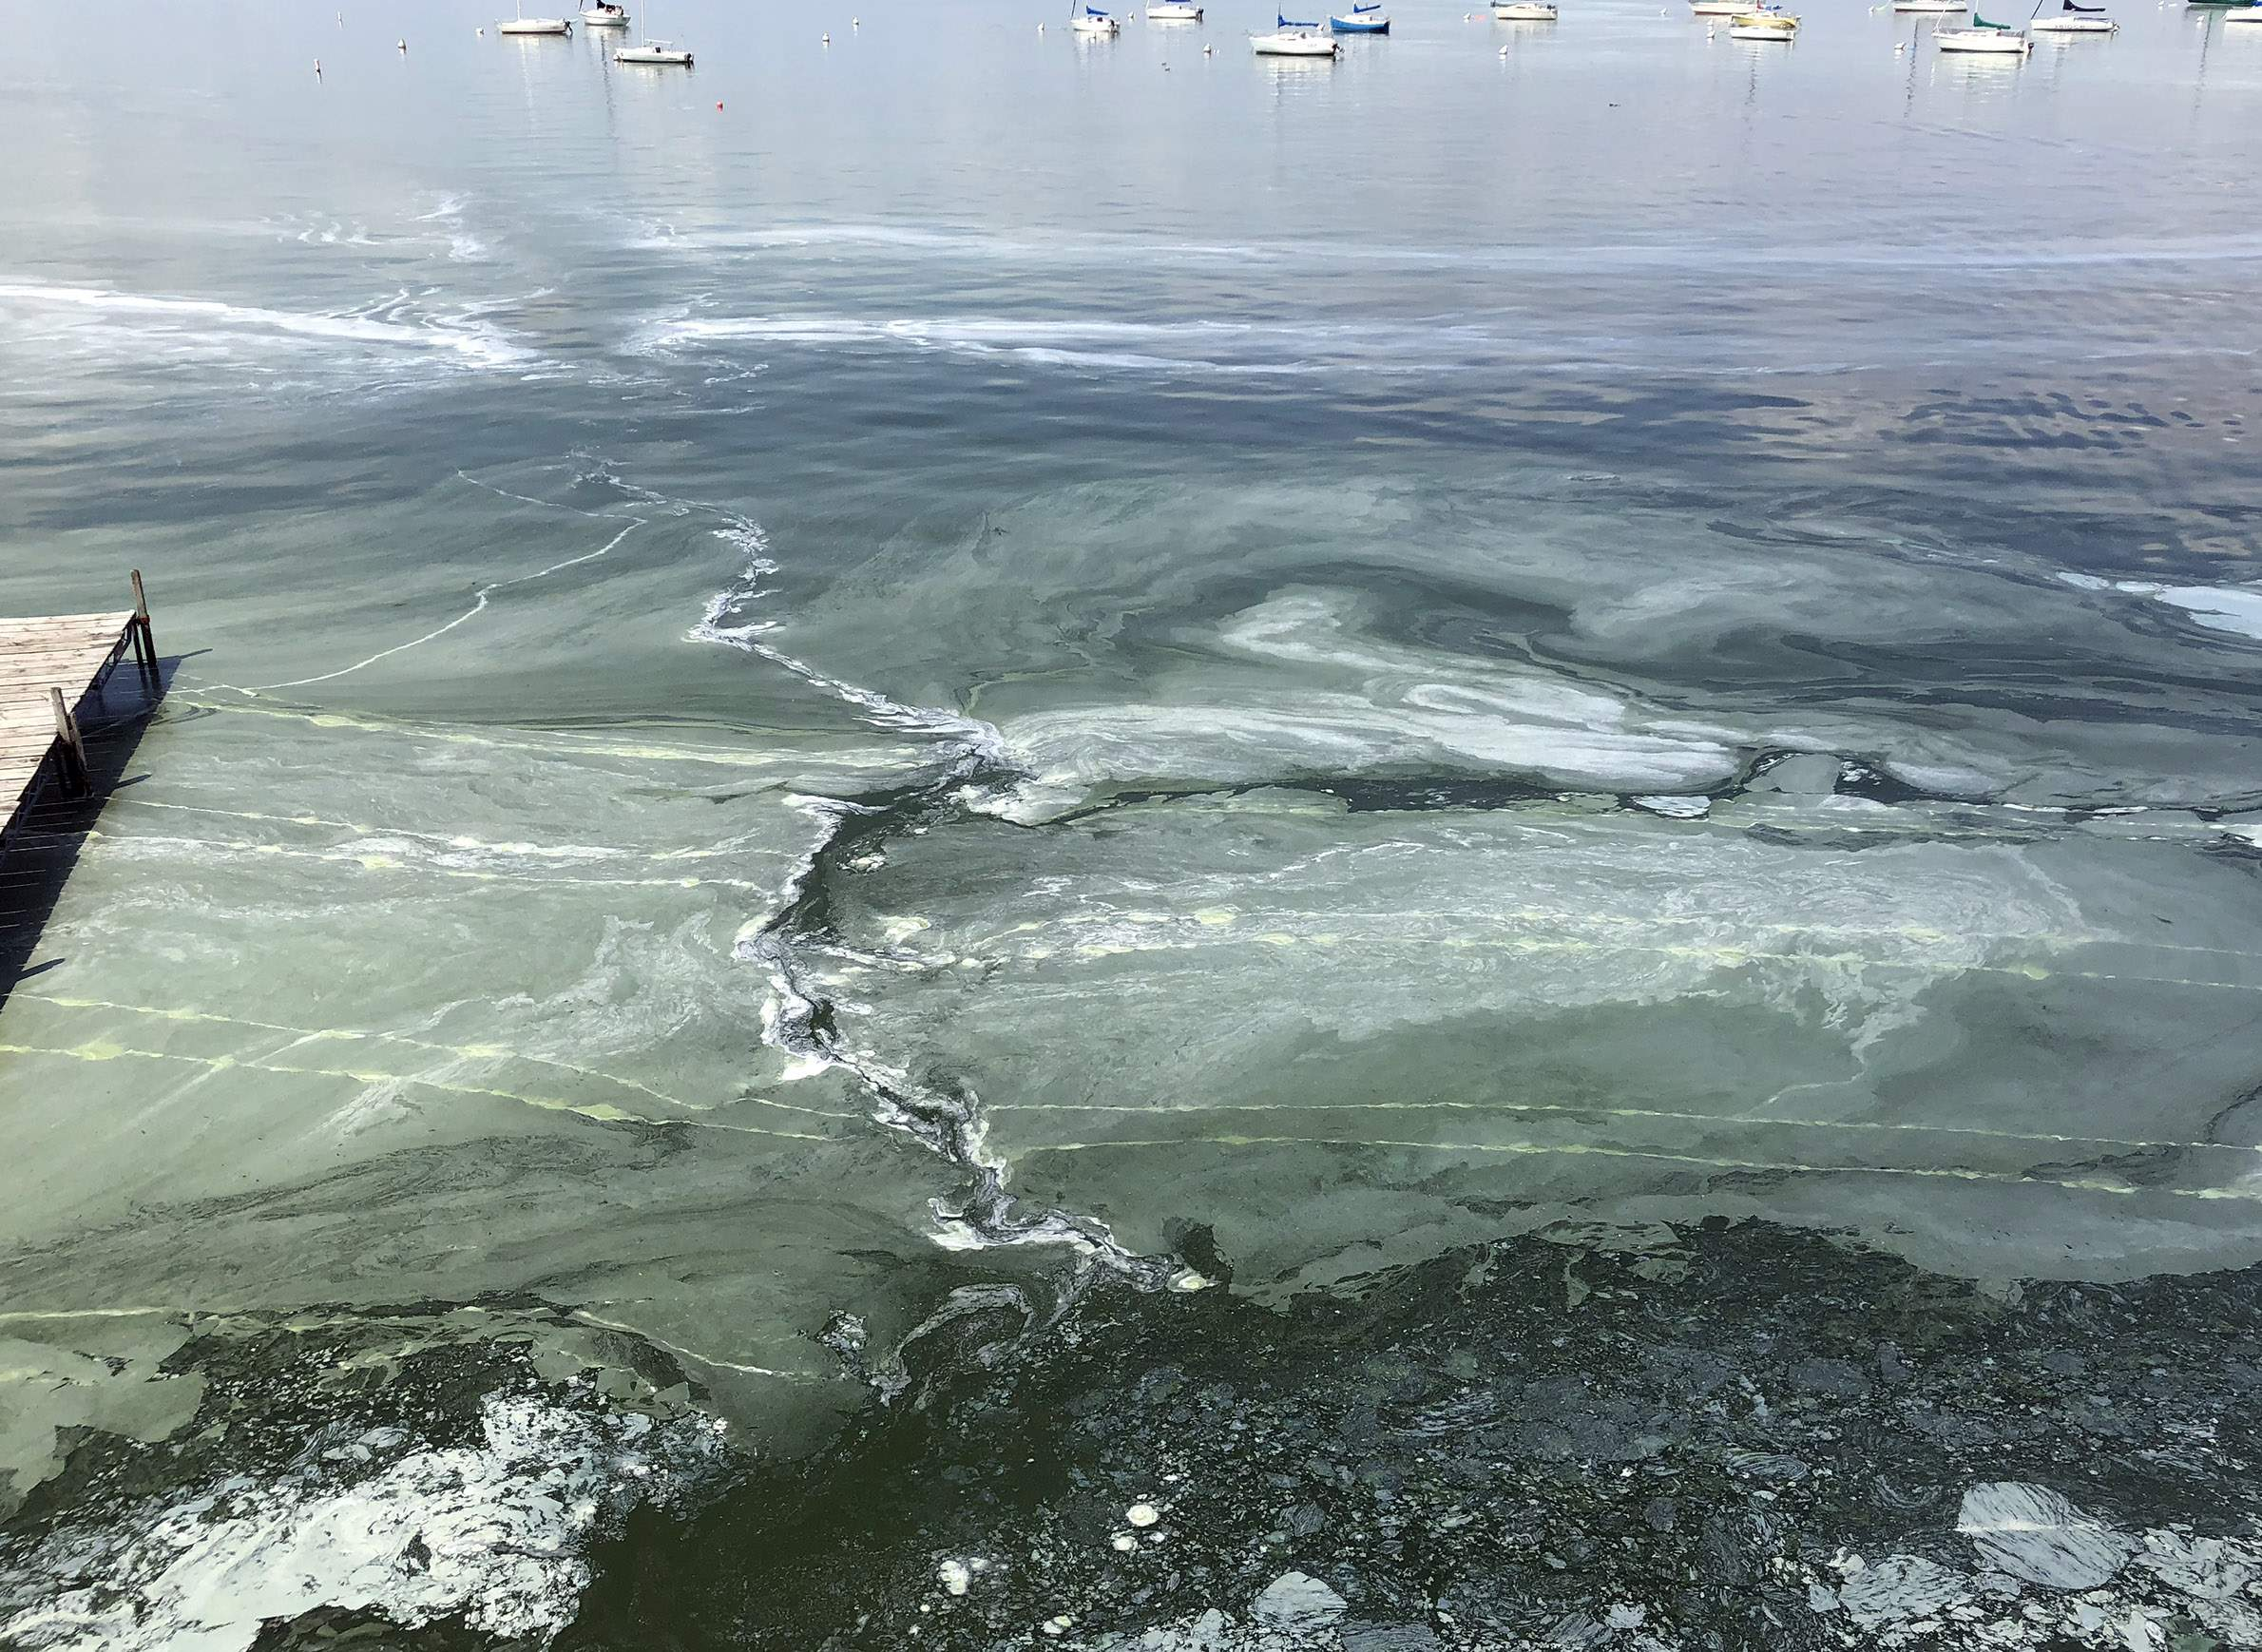 science-environment-lakes-sediments-phosphorus-algae-lakemendota.jpg